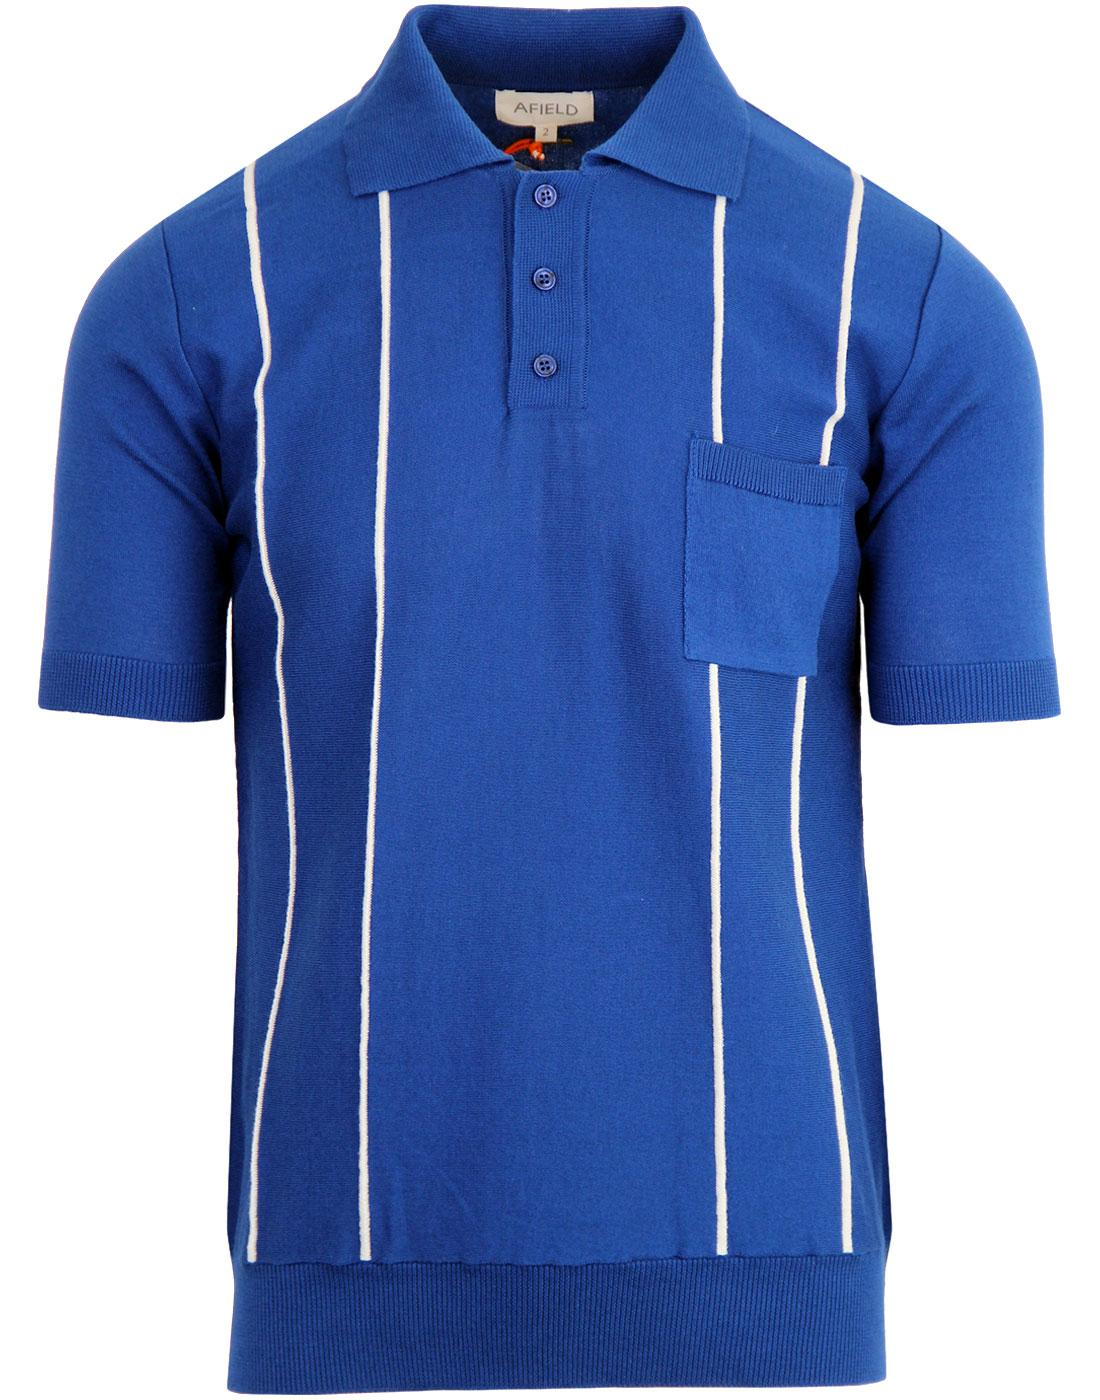 Alfaro AFIELD Men's Mod Stripe Knitted Polo BLUE